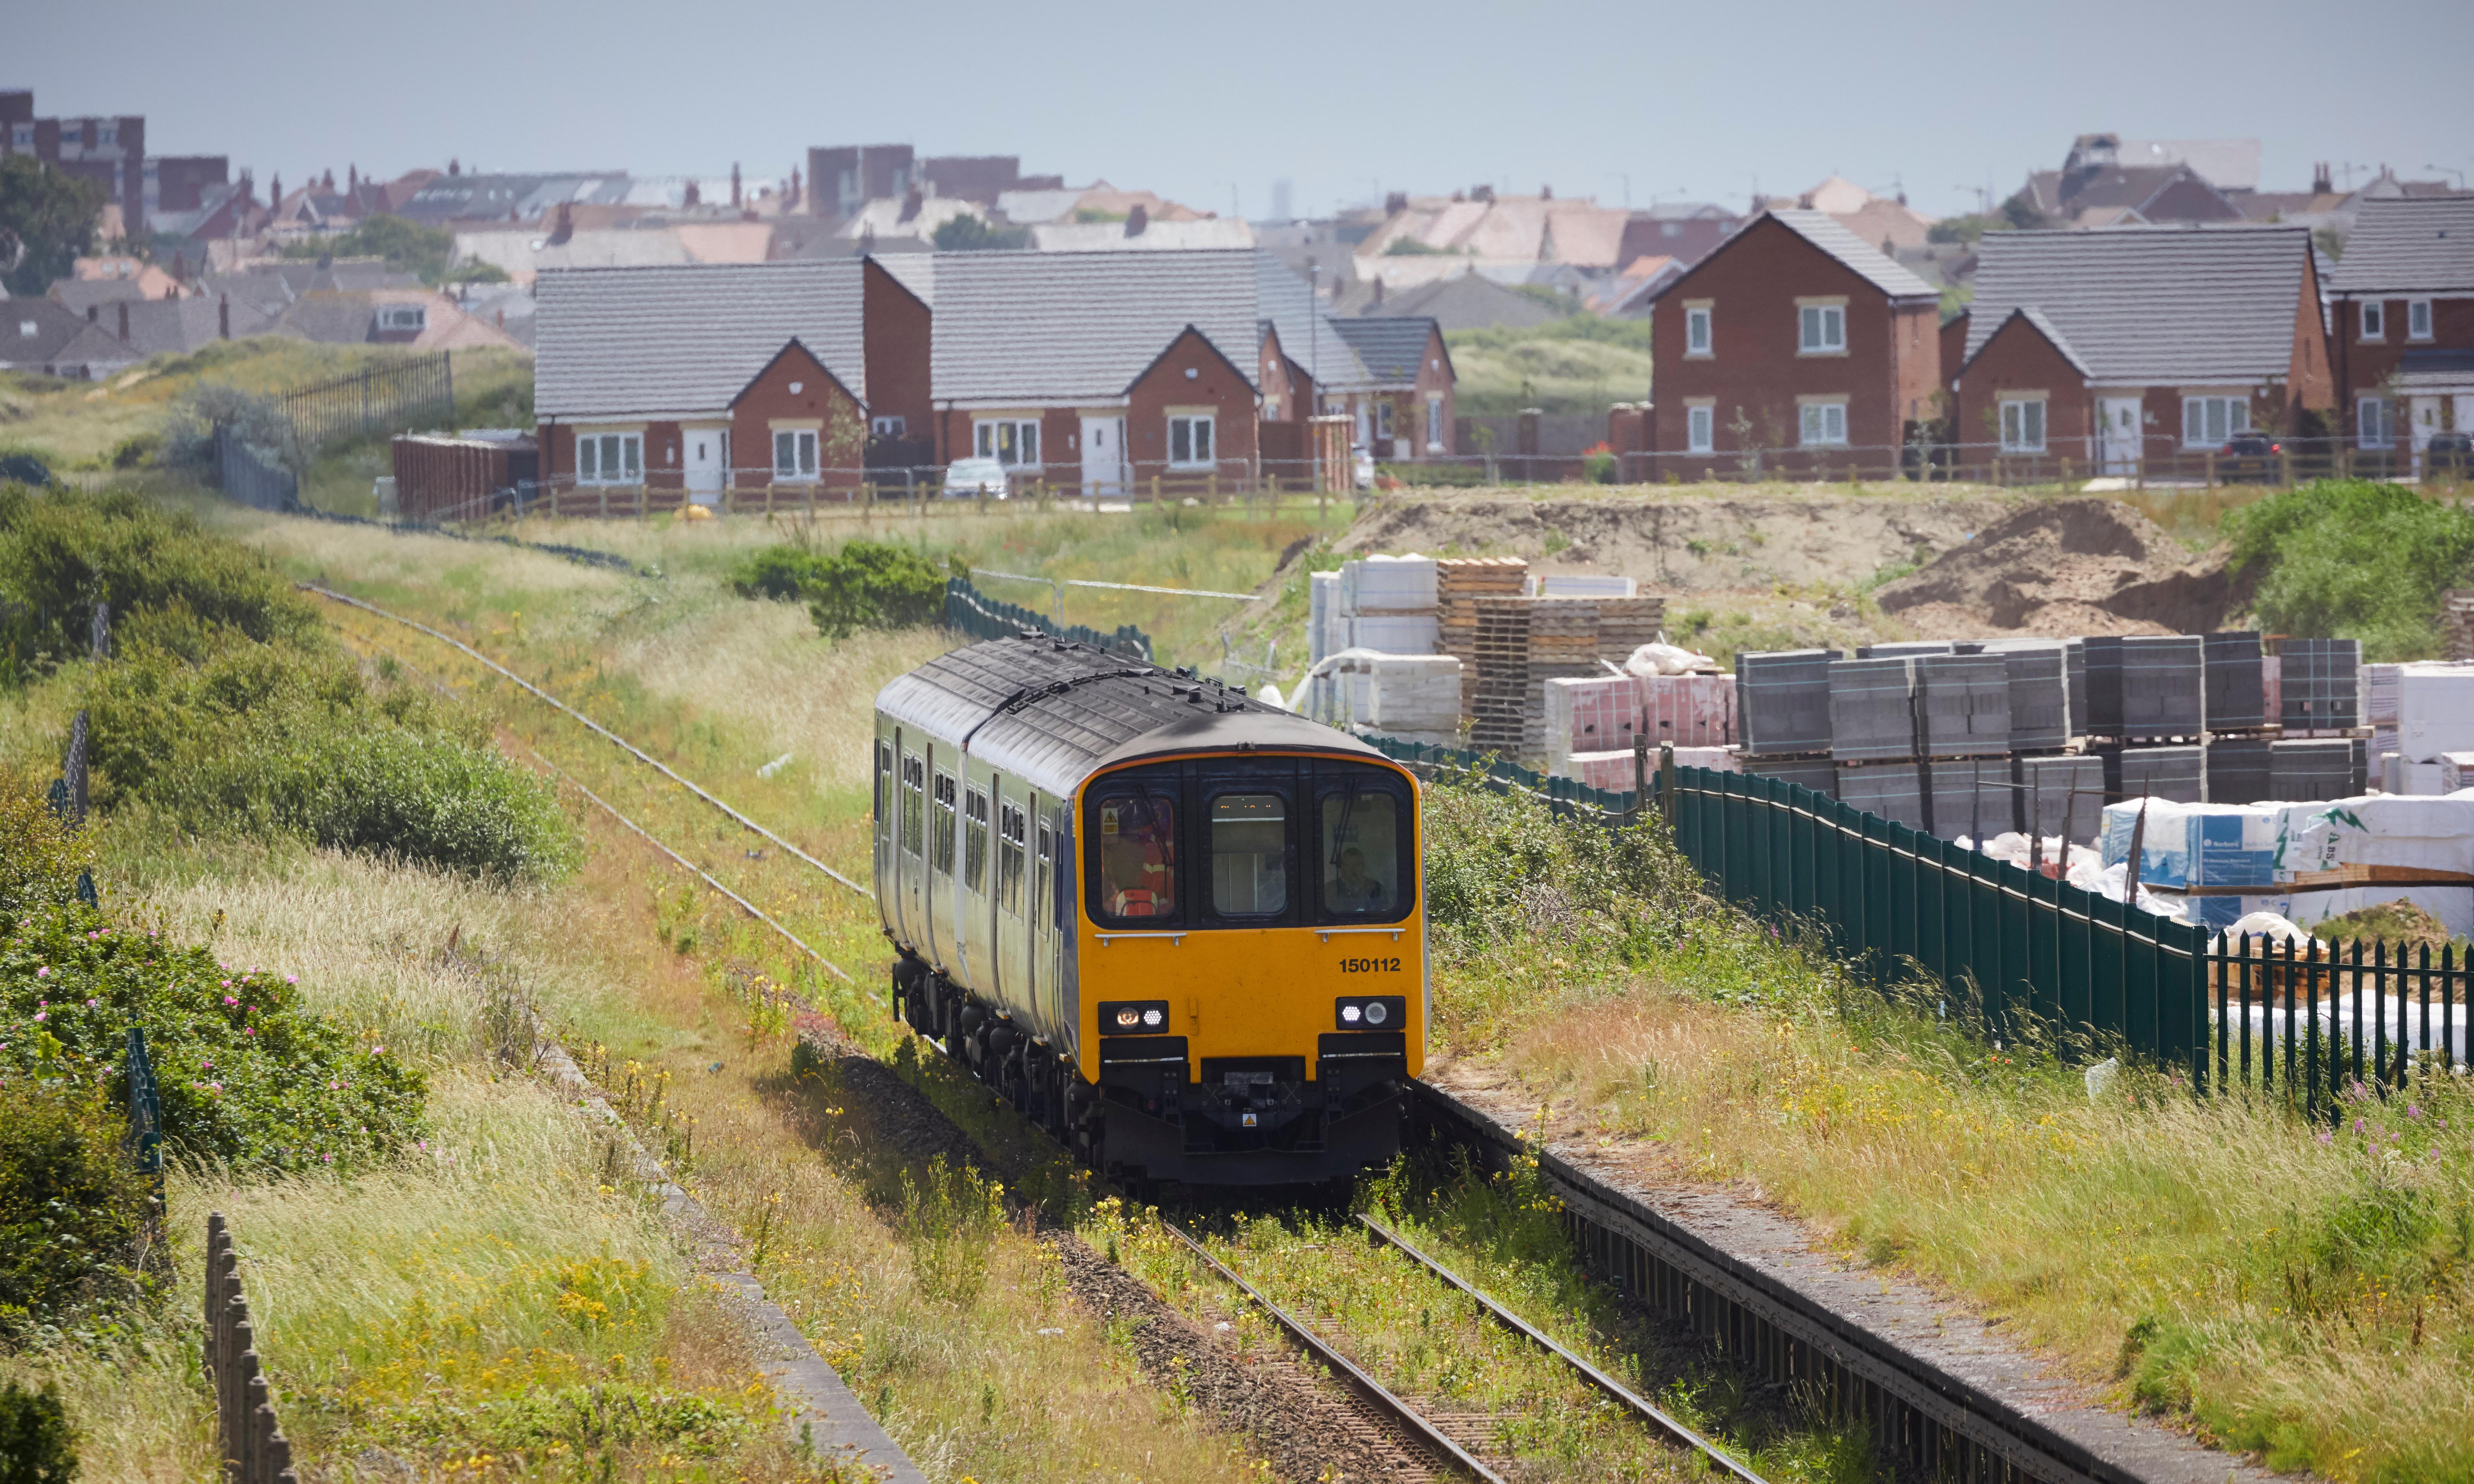 Northern rail could lose franchise after year of passenger misery